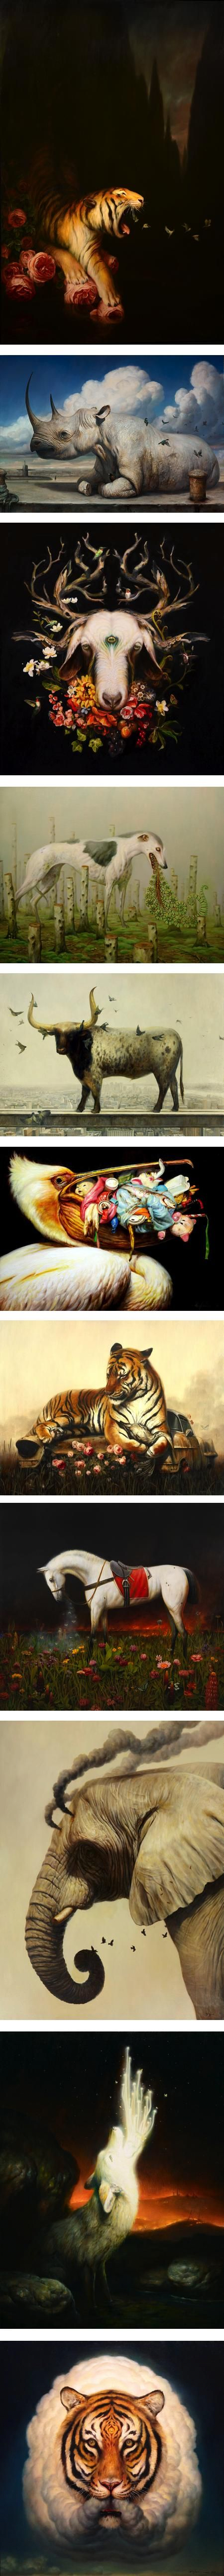 Martin Wittfooth (update)   Lines and Colors :: a blog about drawing, painting, illustration, comics, concept art and other visual arts